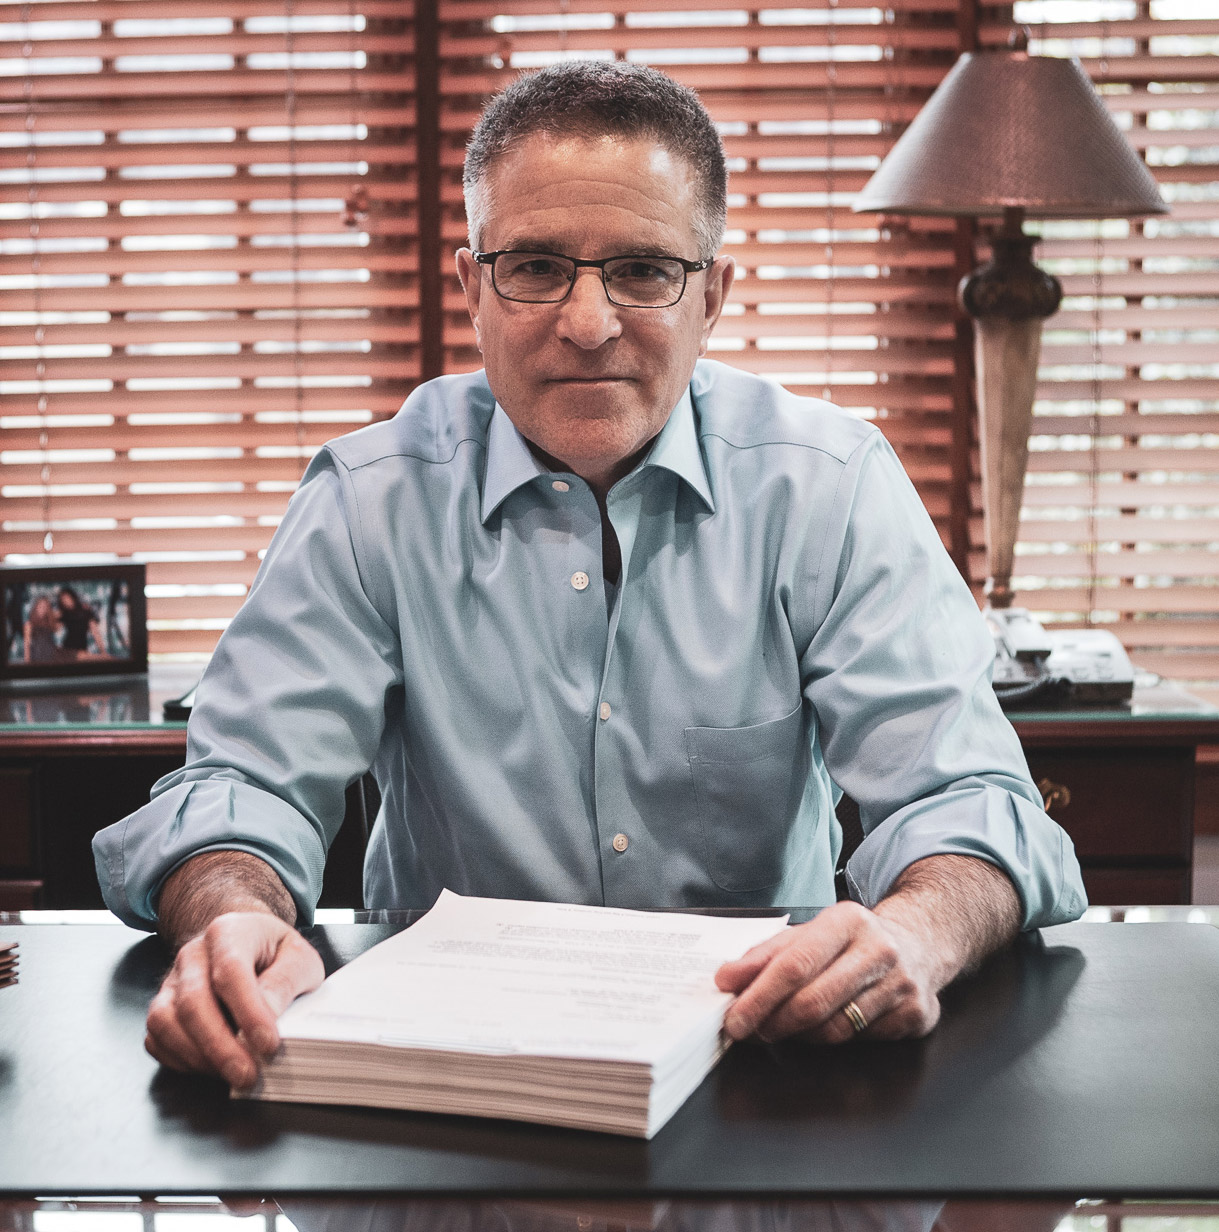 Andrew Goldberg sits in front of a stack of case materials.